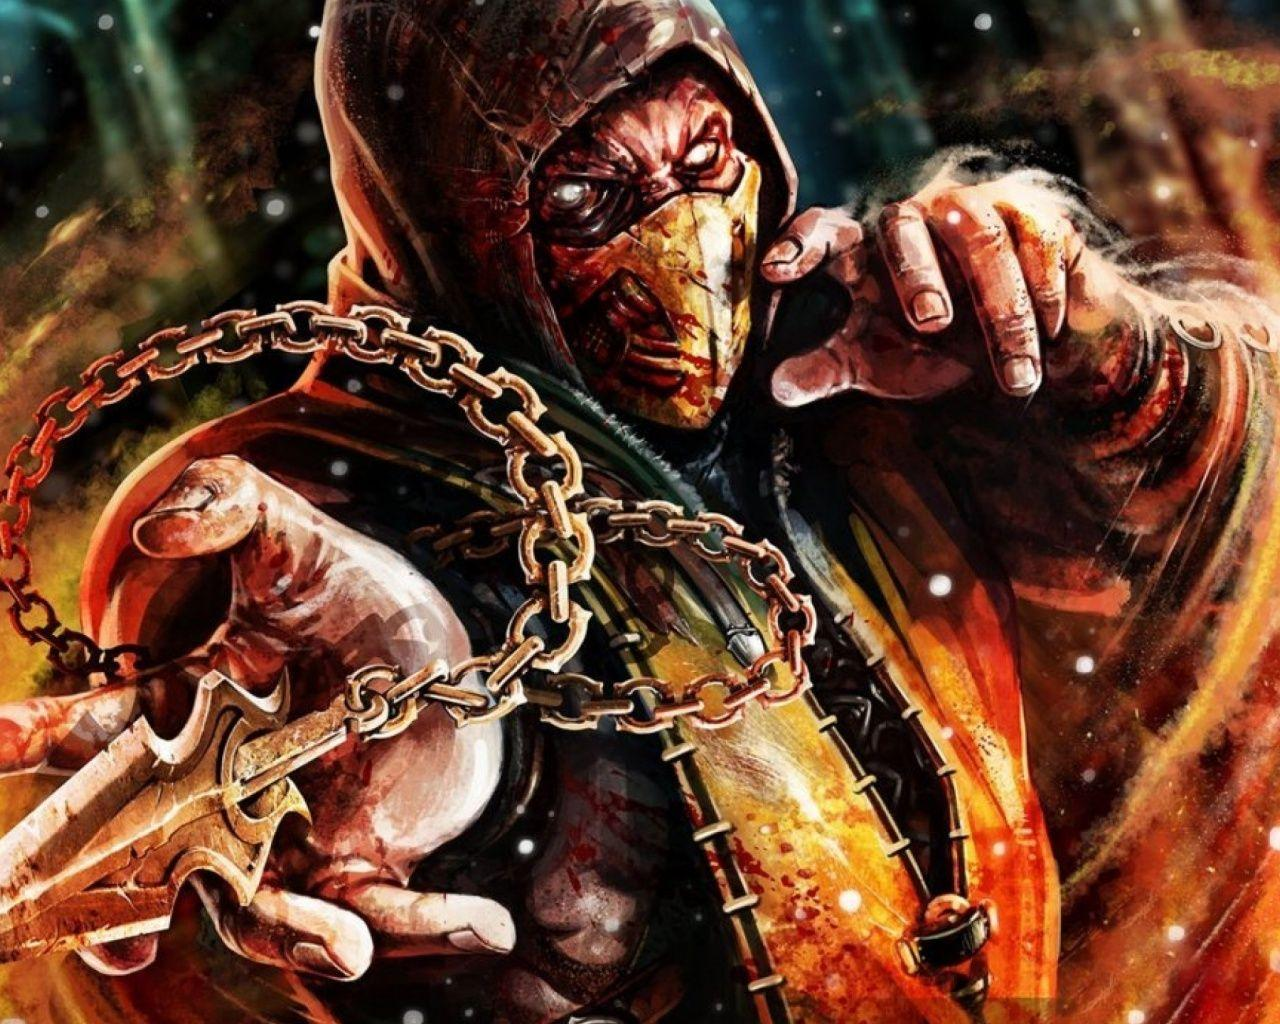 1280x1024 Scorpion Mortal Kombat X desktop PC and Mac wallpapers